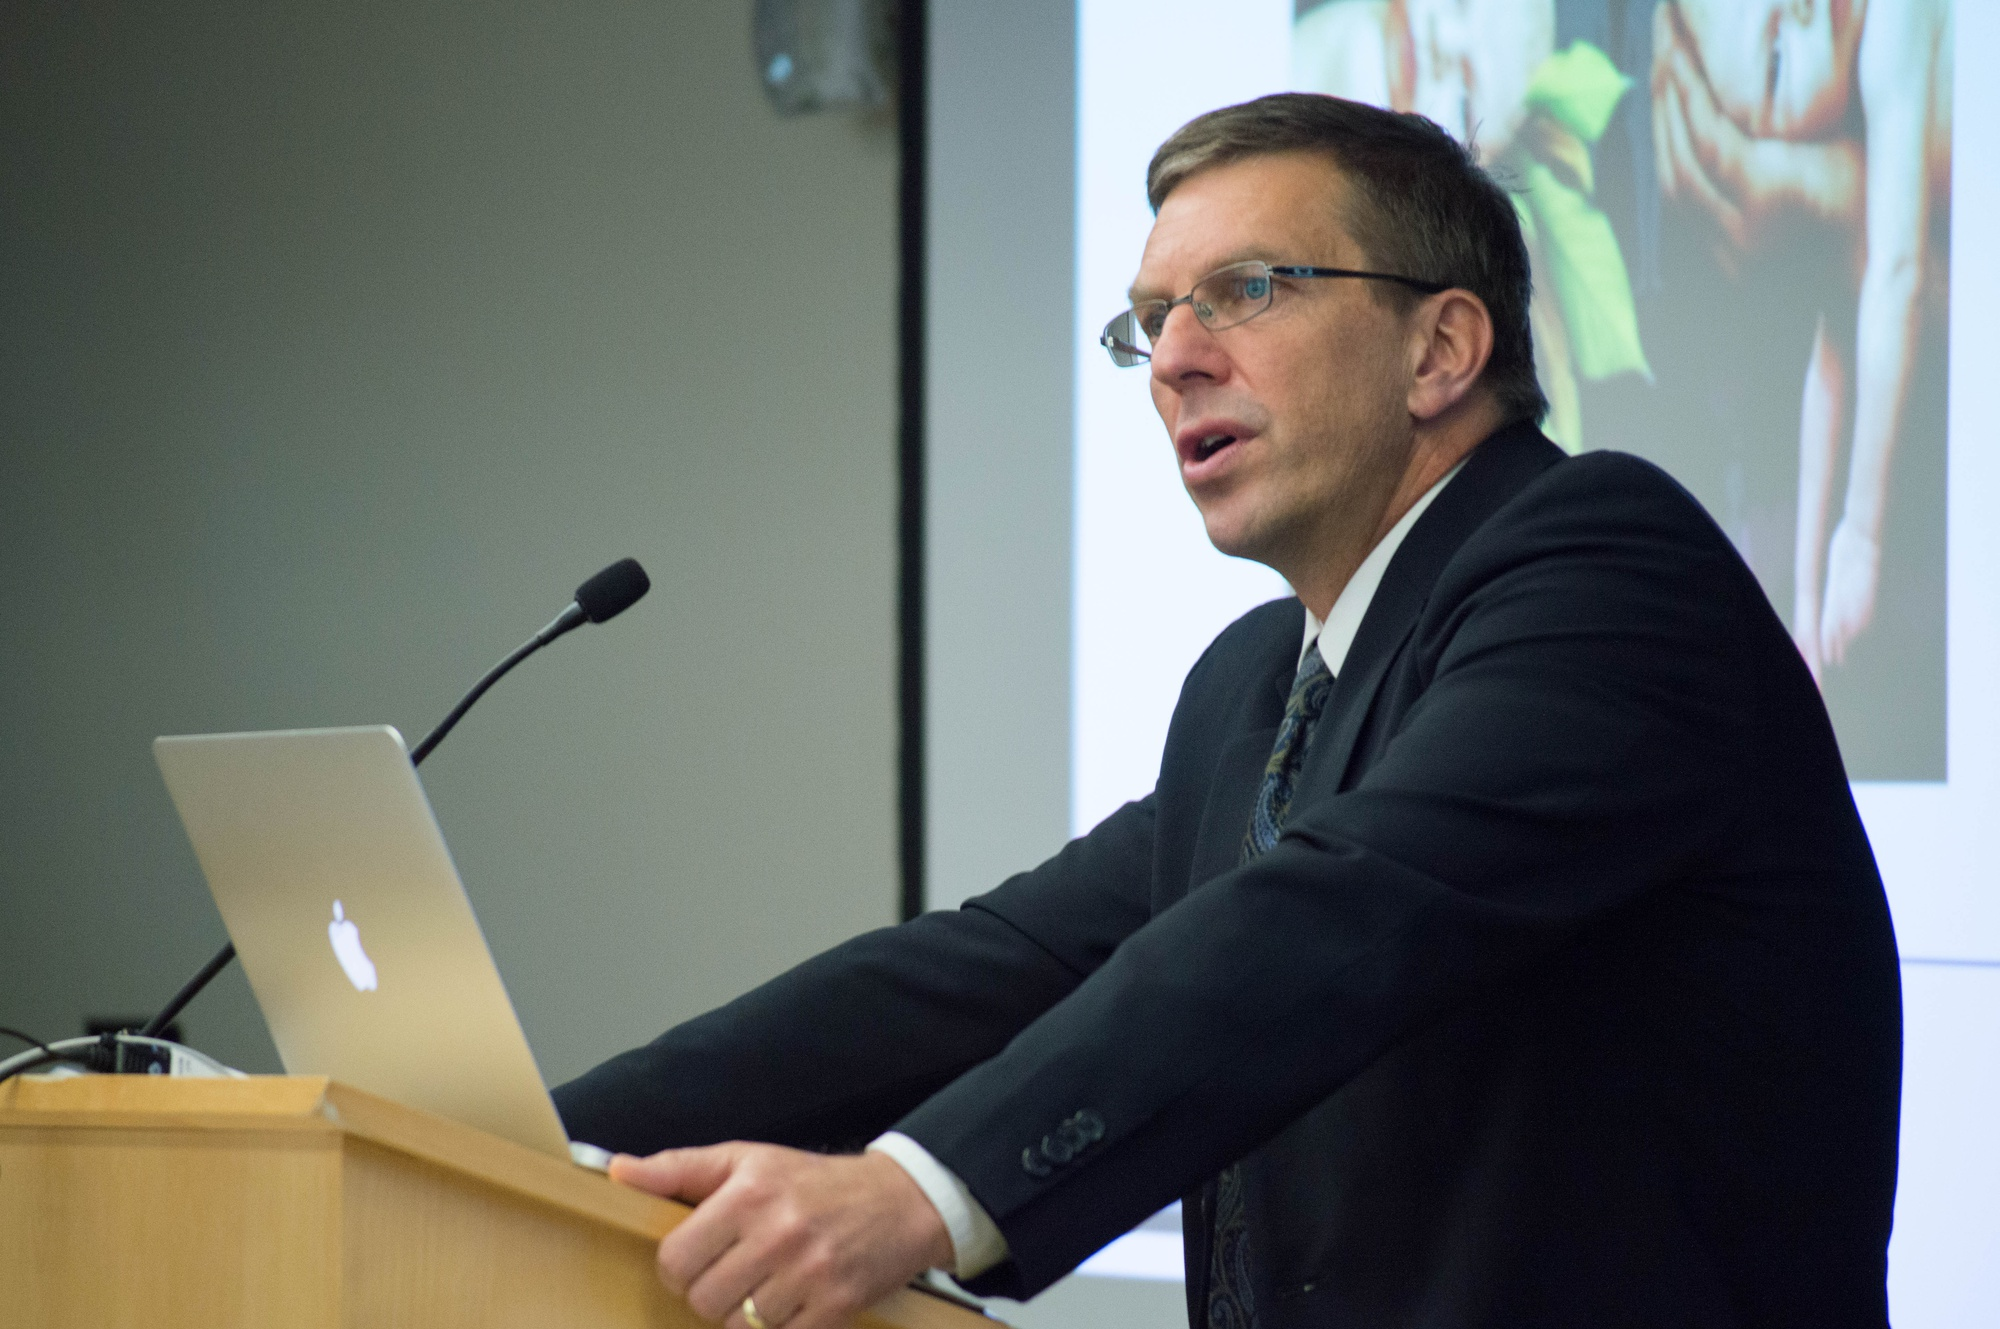 """Julian Savulescu, a professor of ethics at the University of Oxford, speaks about the moral framework revolving around bioethics in a Harvard Law School discussion. """"There is no simple solution,"""" emphasized Savulescu. He went on to conclude that bioprediction can be used ethically, however only in specific circumstances."""